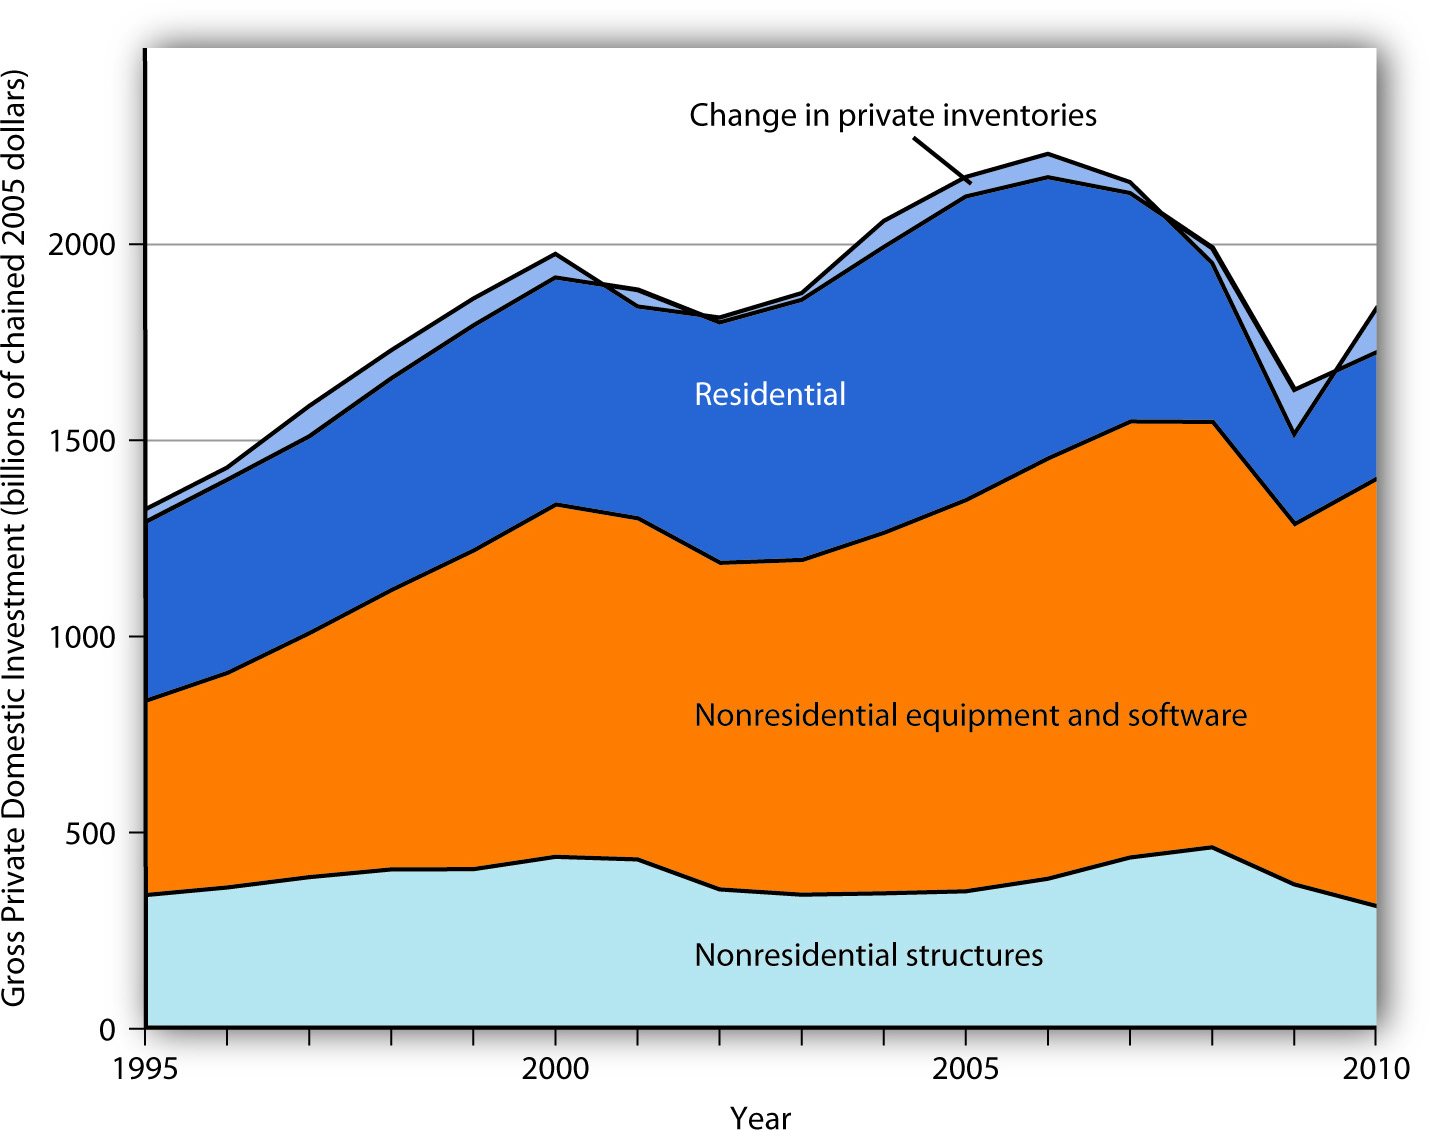 Components of Gross Private Domestic Investment. This chart shows the levels of each of the four components of gross private domestic investment from 1990 through the third quarter of 2010. Nonresidential equipment and software is the largest component of GPDI and has shown the most substantial growth over the period.